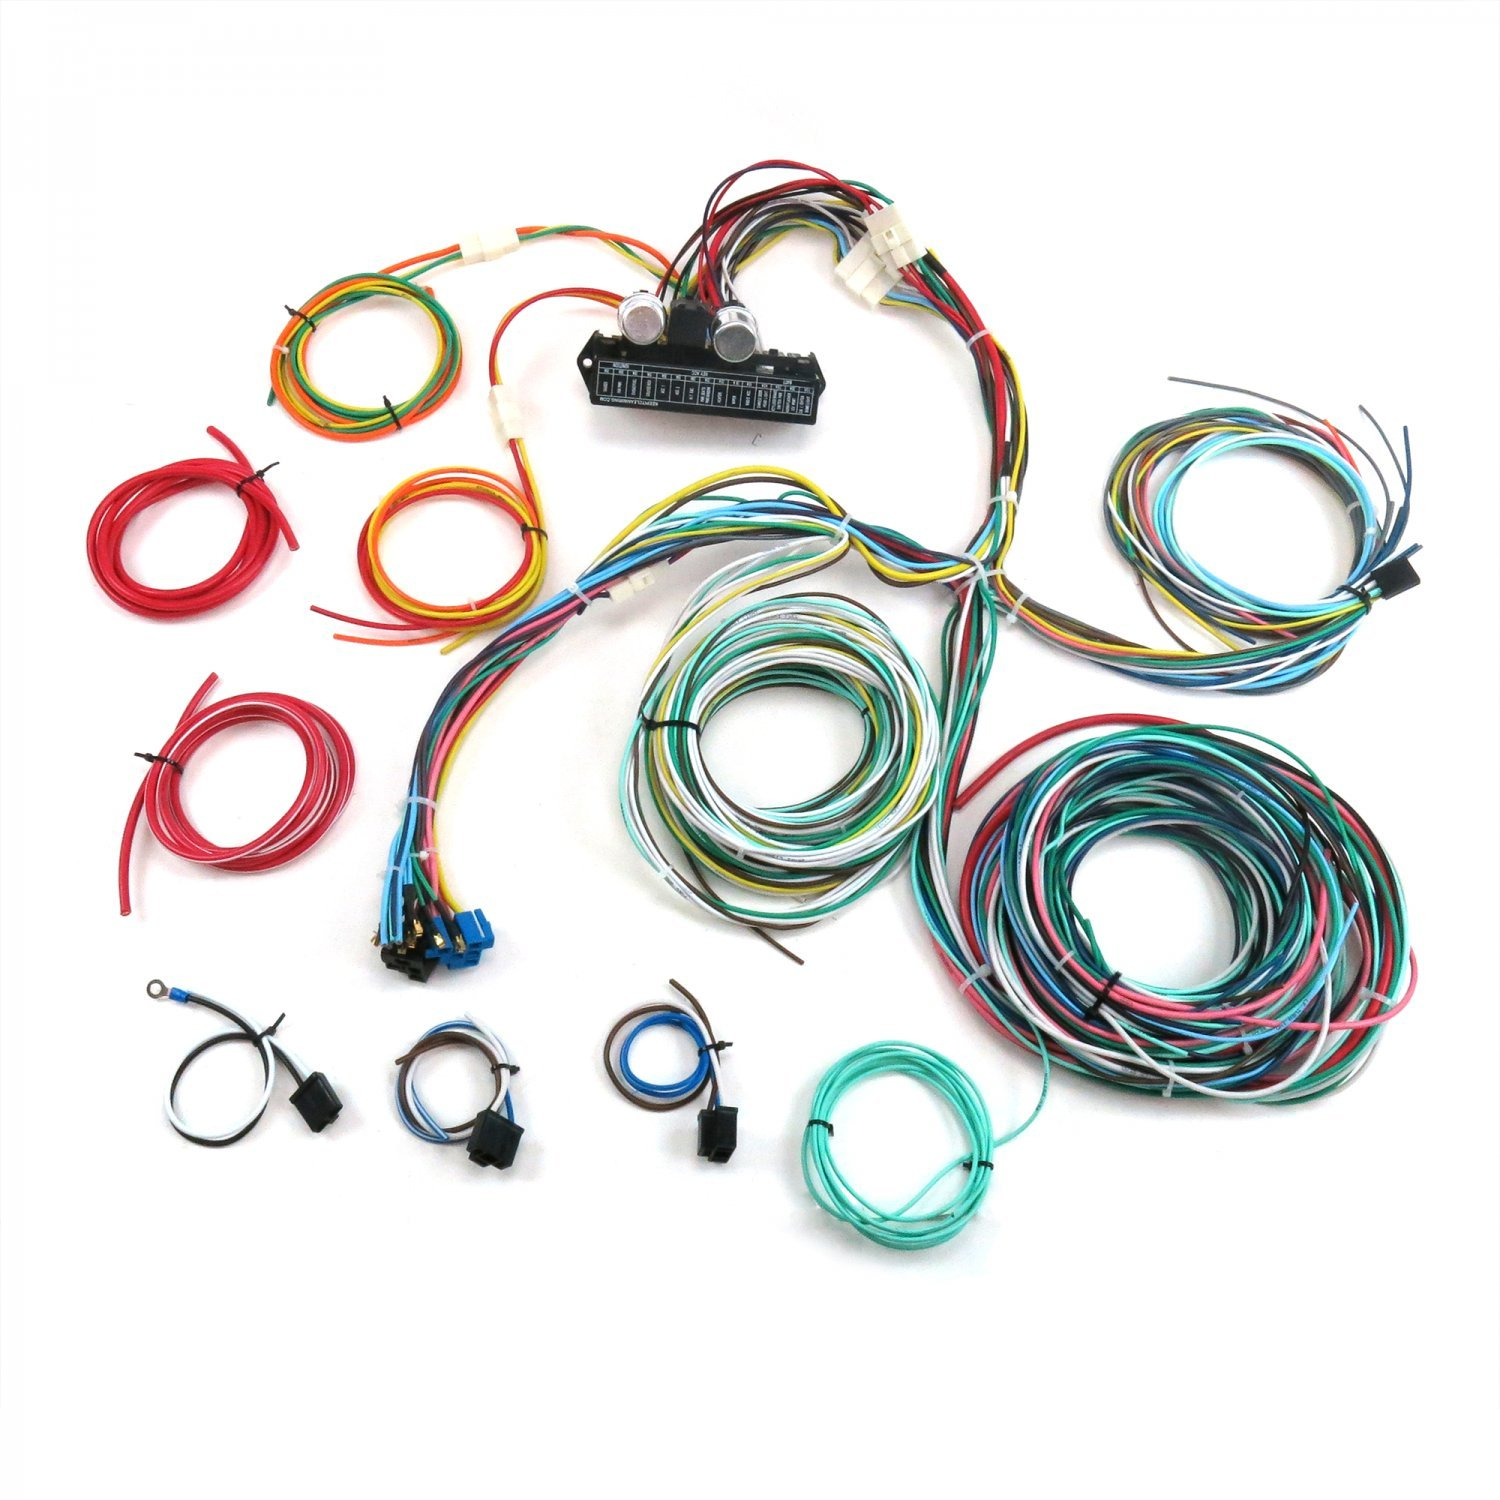 Amazon.com: Keep It Clean Wiring Accessories GH24Circuit 24 Circuit  Streetrod, Muscle car, Rat Rod, GM,Hot Rod wiring harness: Automotive